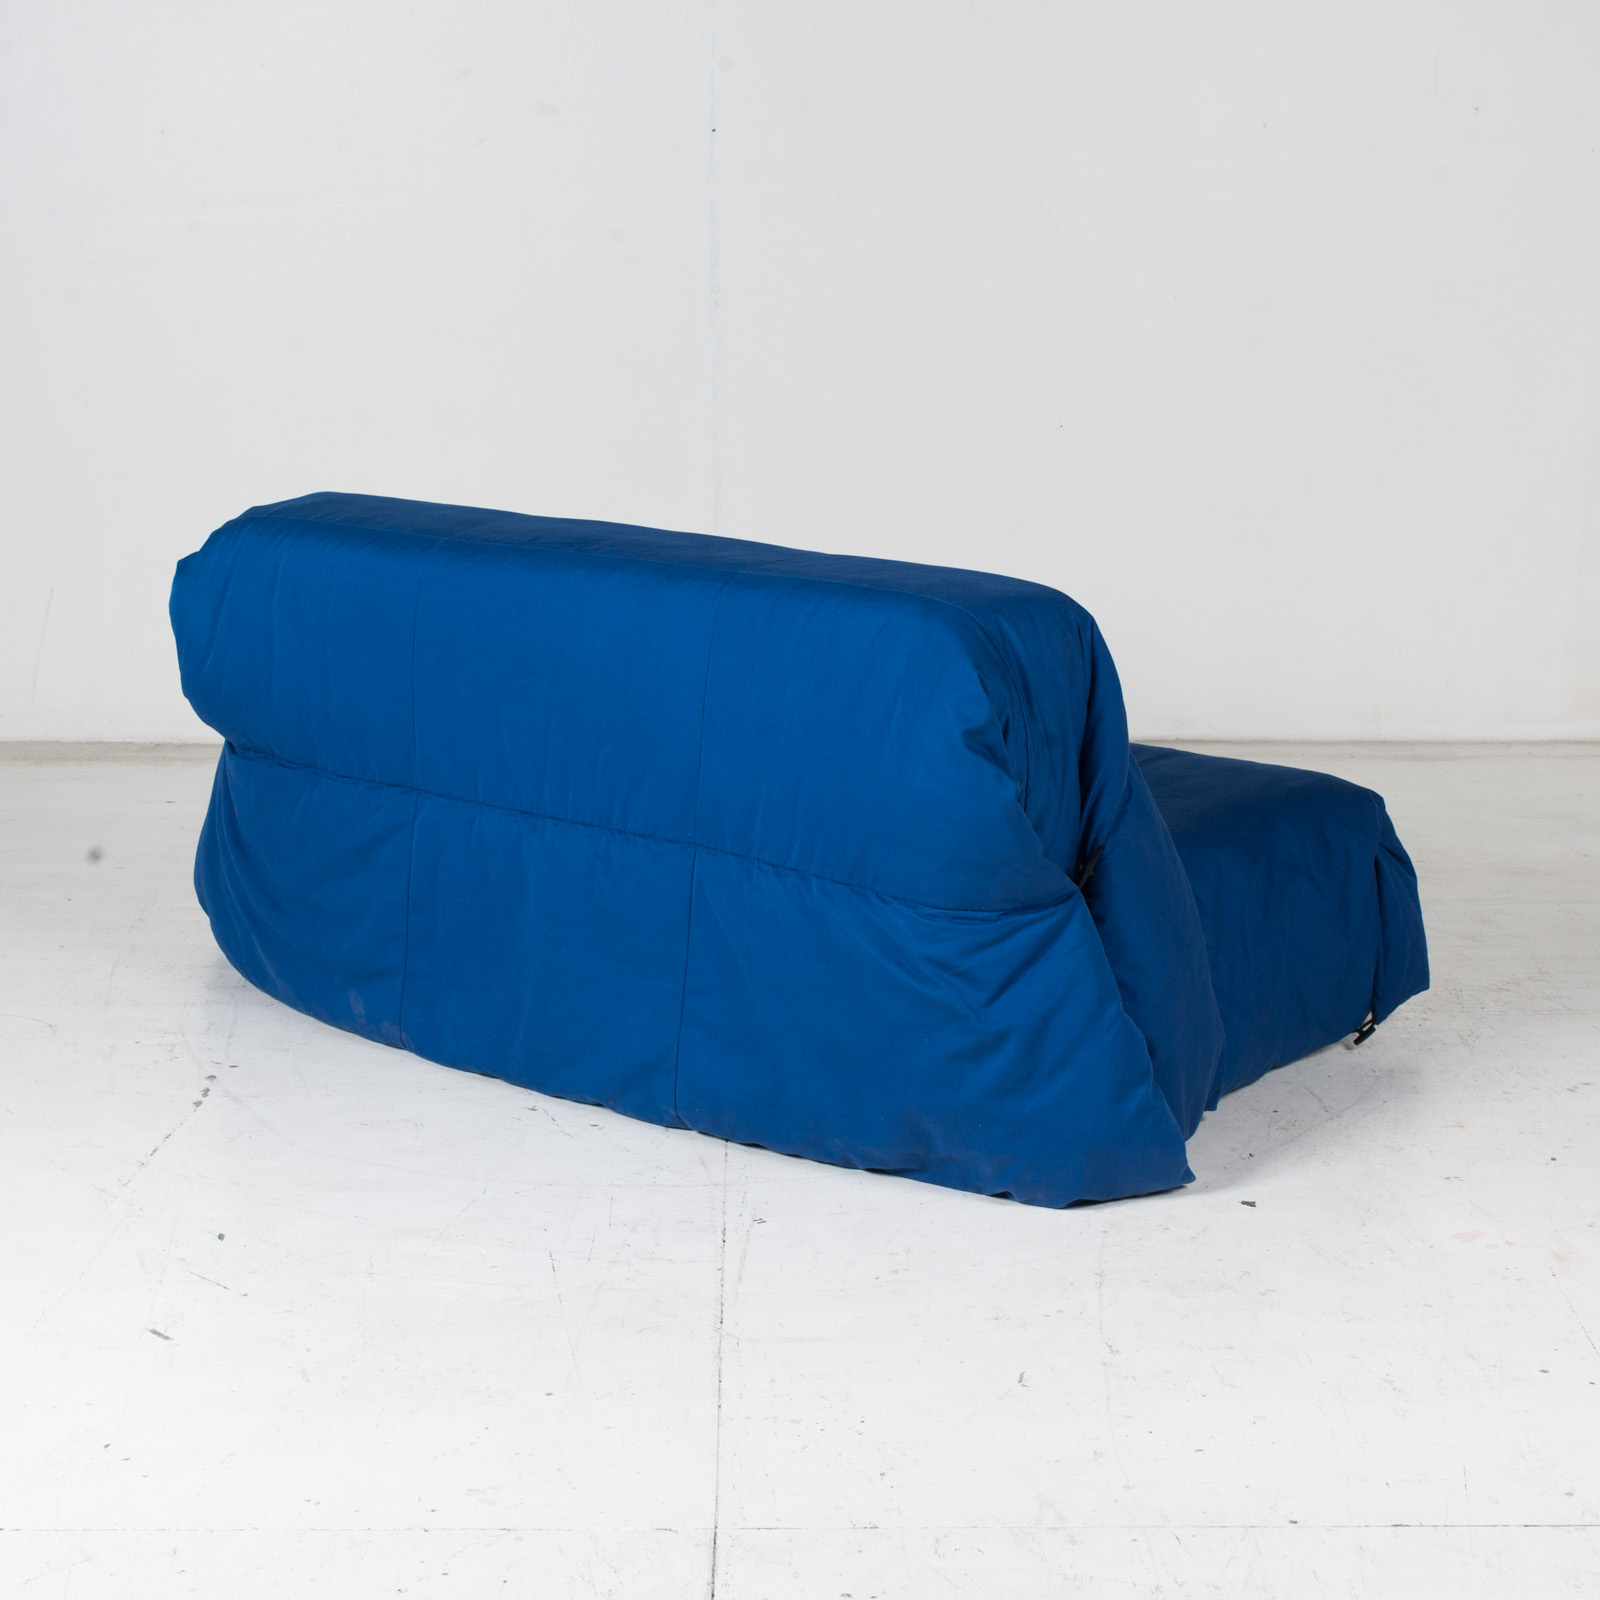 Sofa Bed By Ligne Roset In Blue Upholstery, 1960s, France7